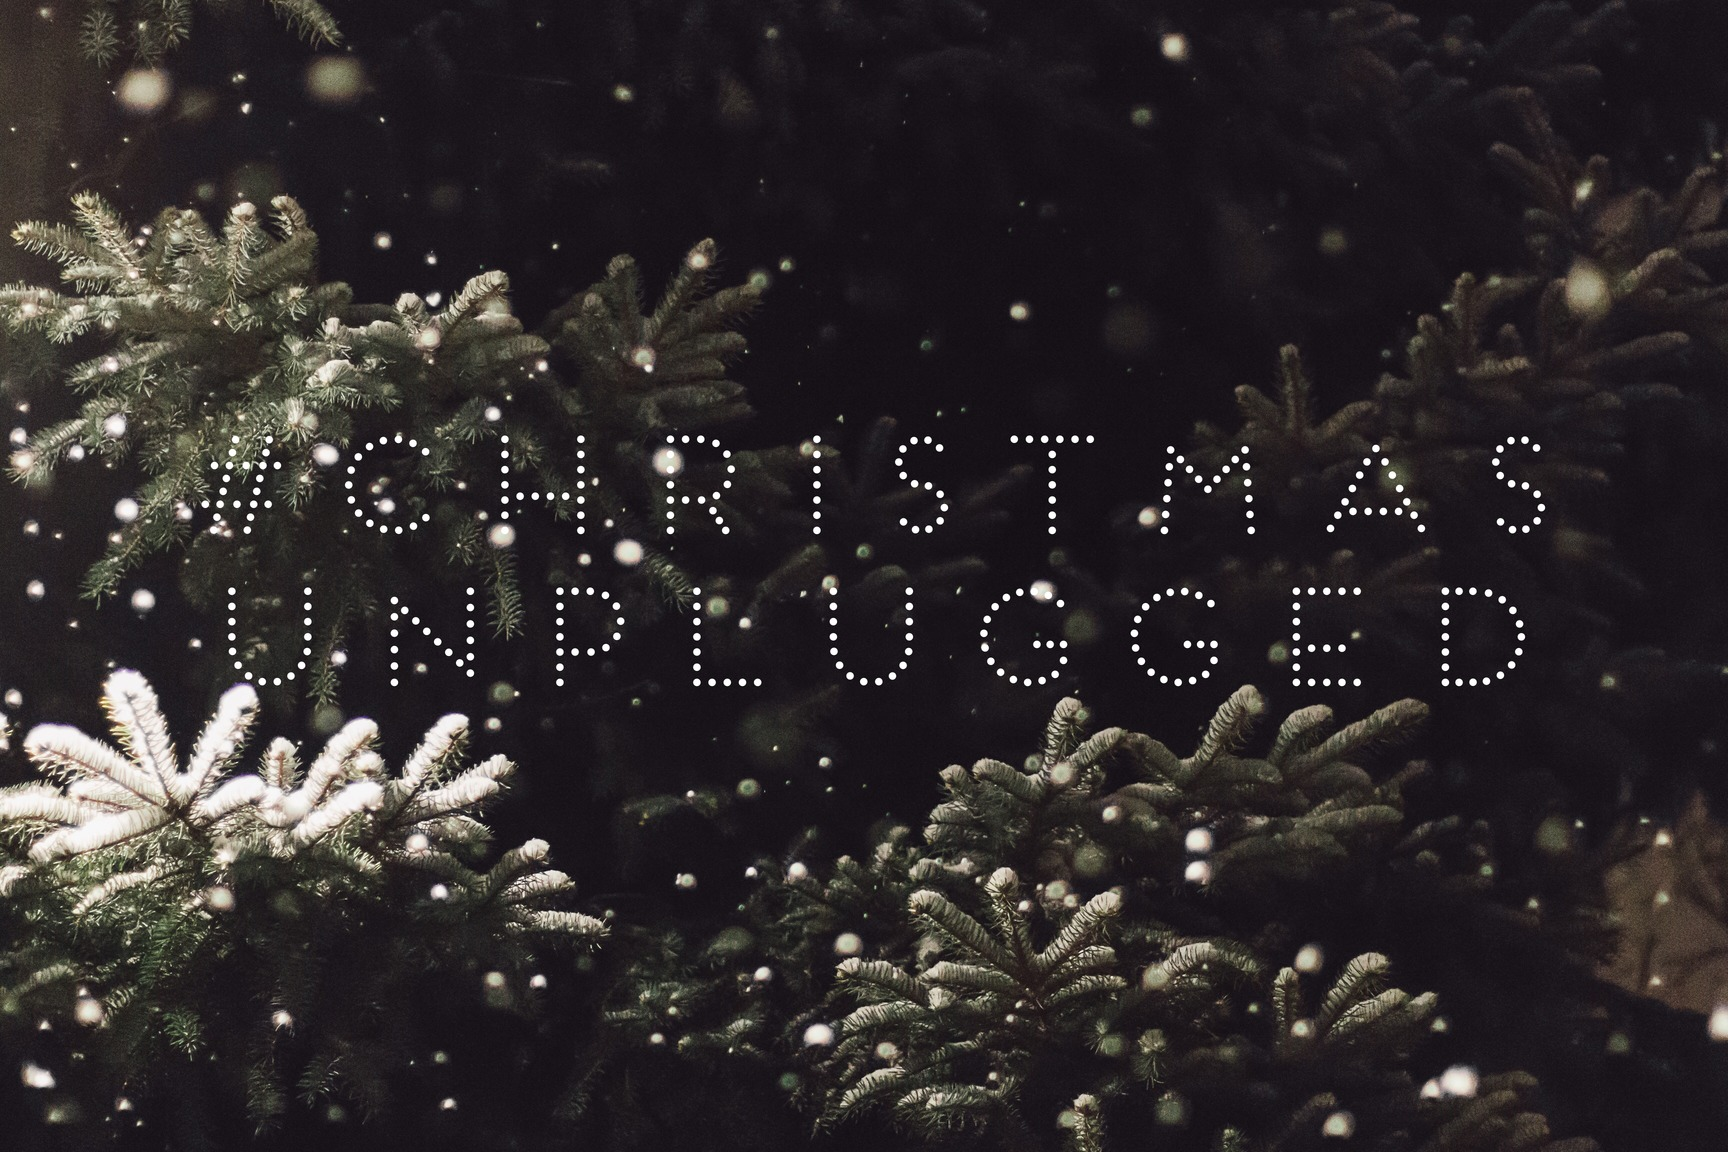 #ChristmasUnplugged